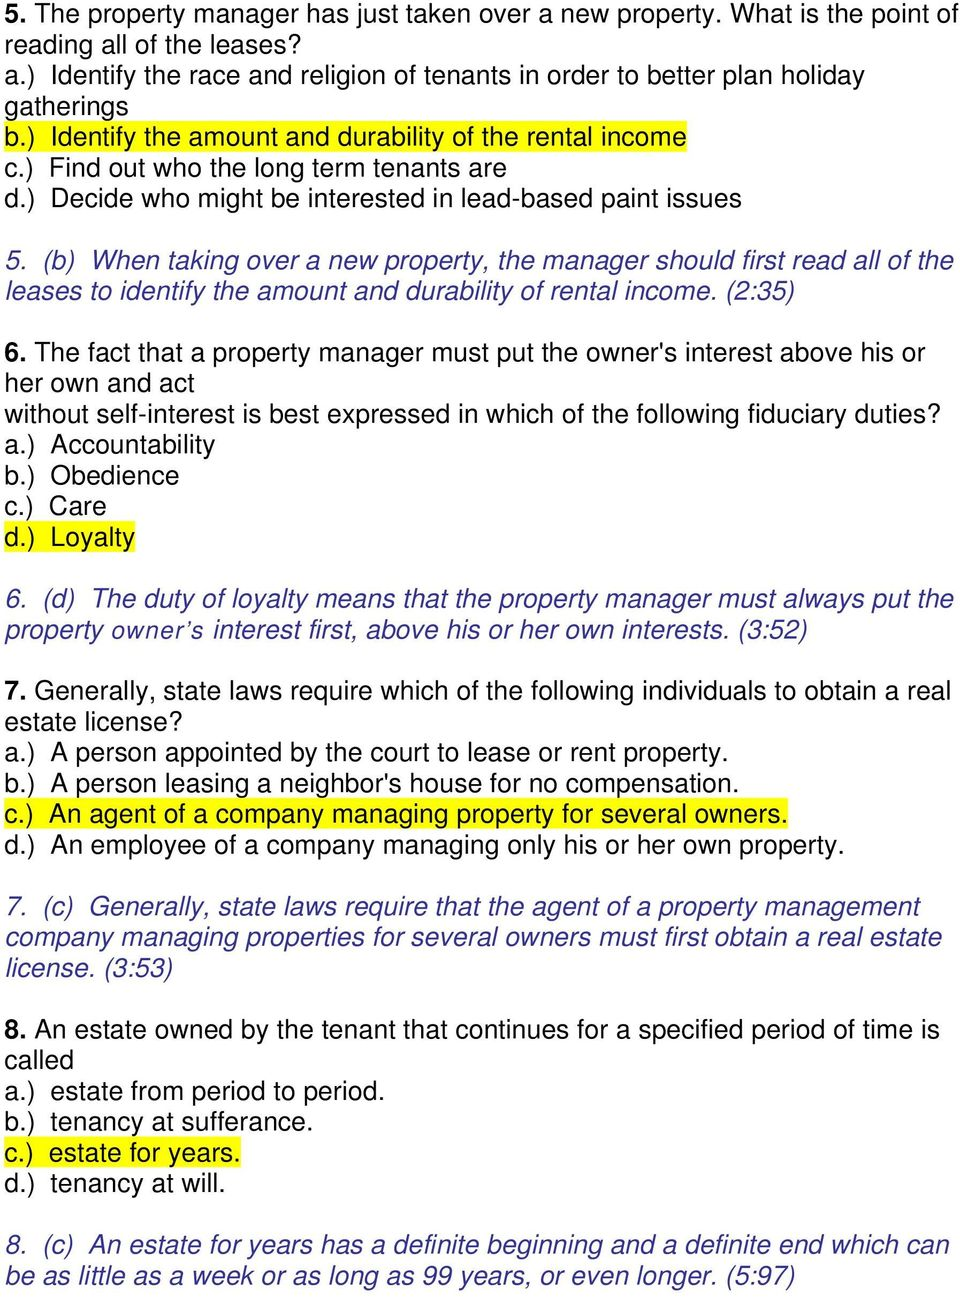 professional property management trec pdf b when taking over a new property the manager should first all